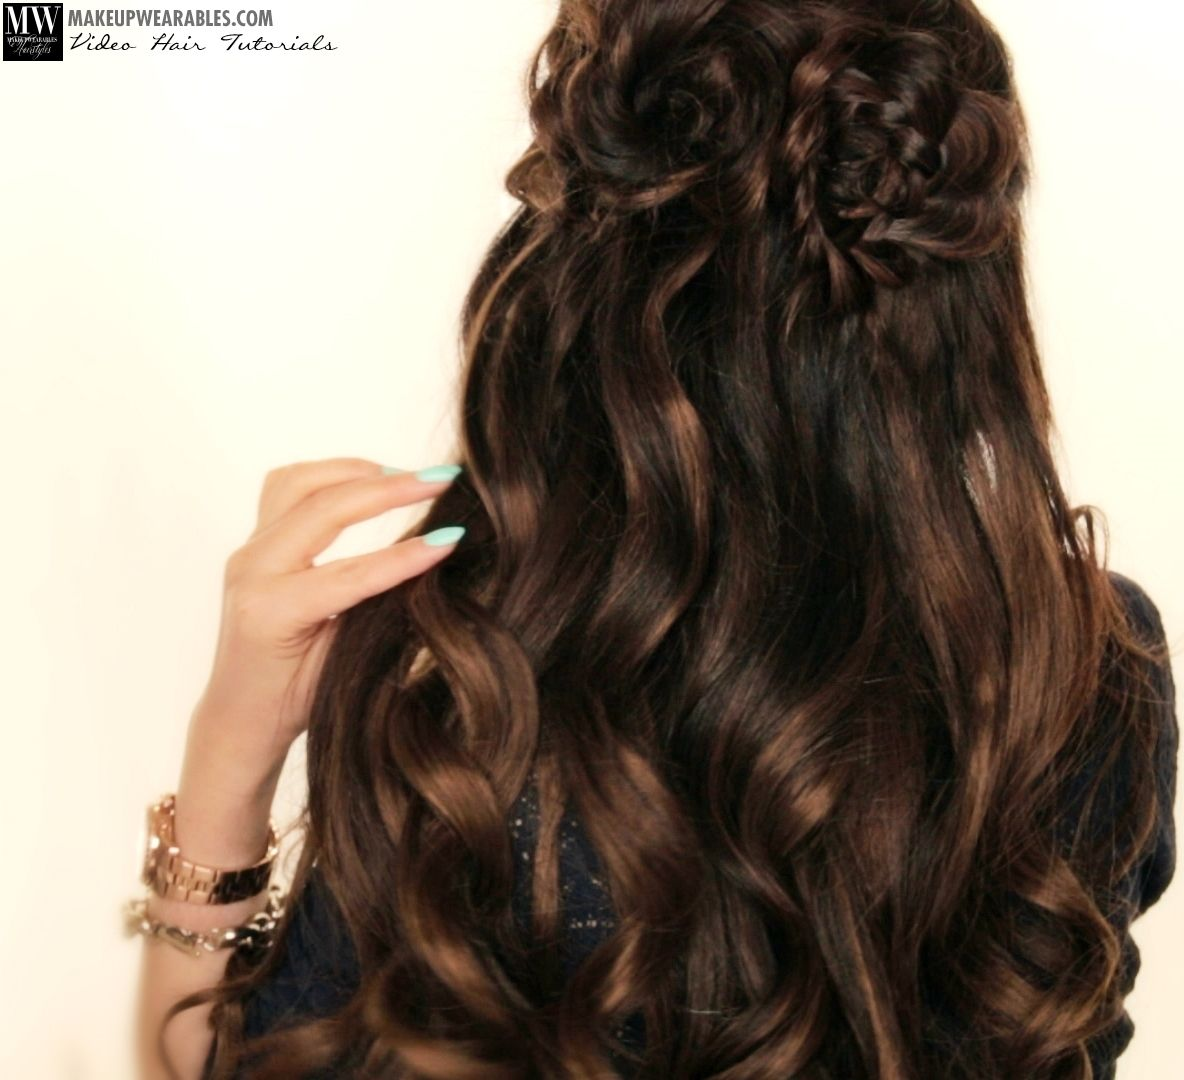 Spring Flower Braid Half Up Half Down Hairstyle Tutorial Video Half Up Hair Hair Tutorial Down Hairstyles